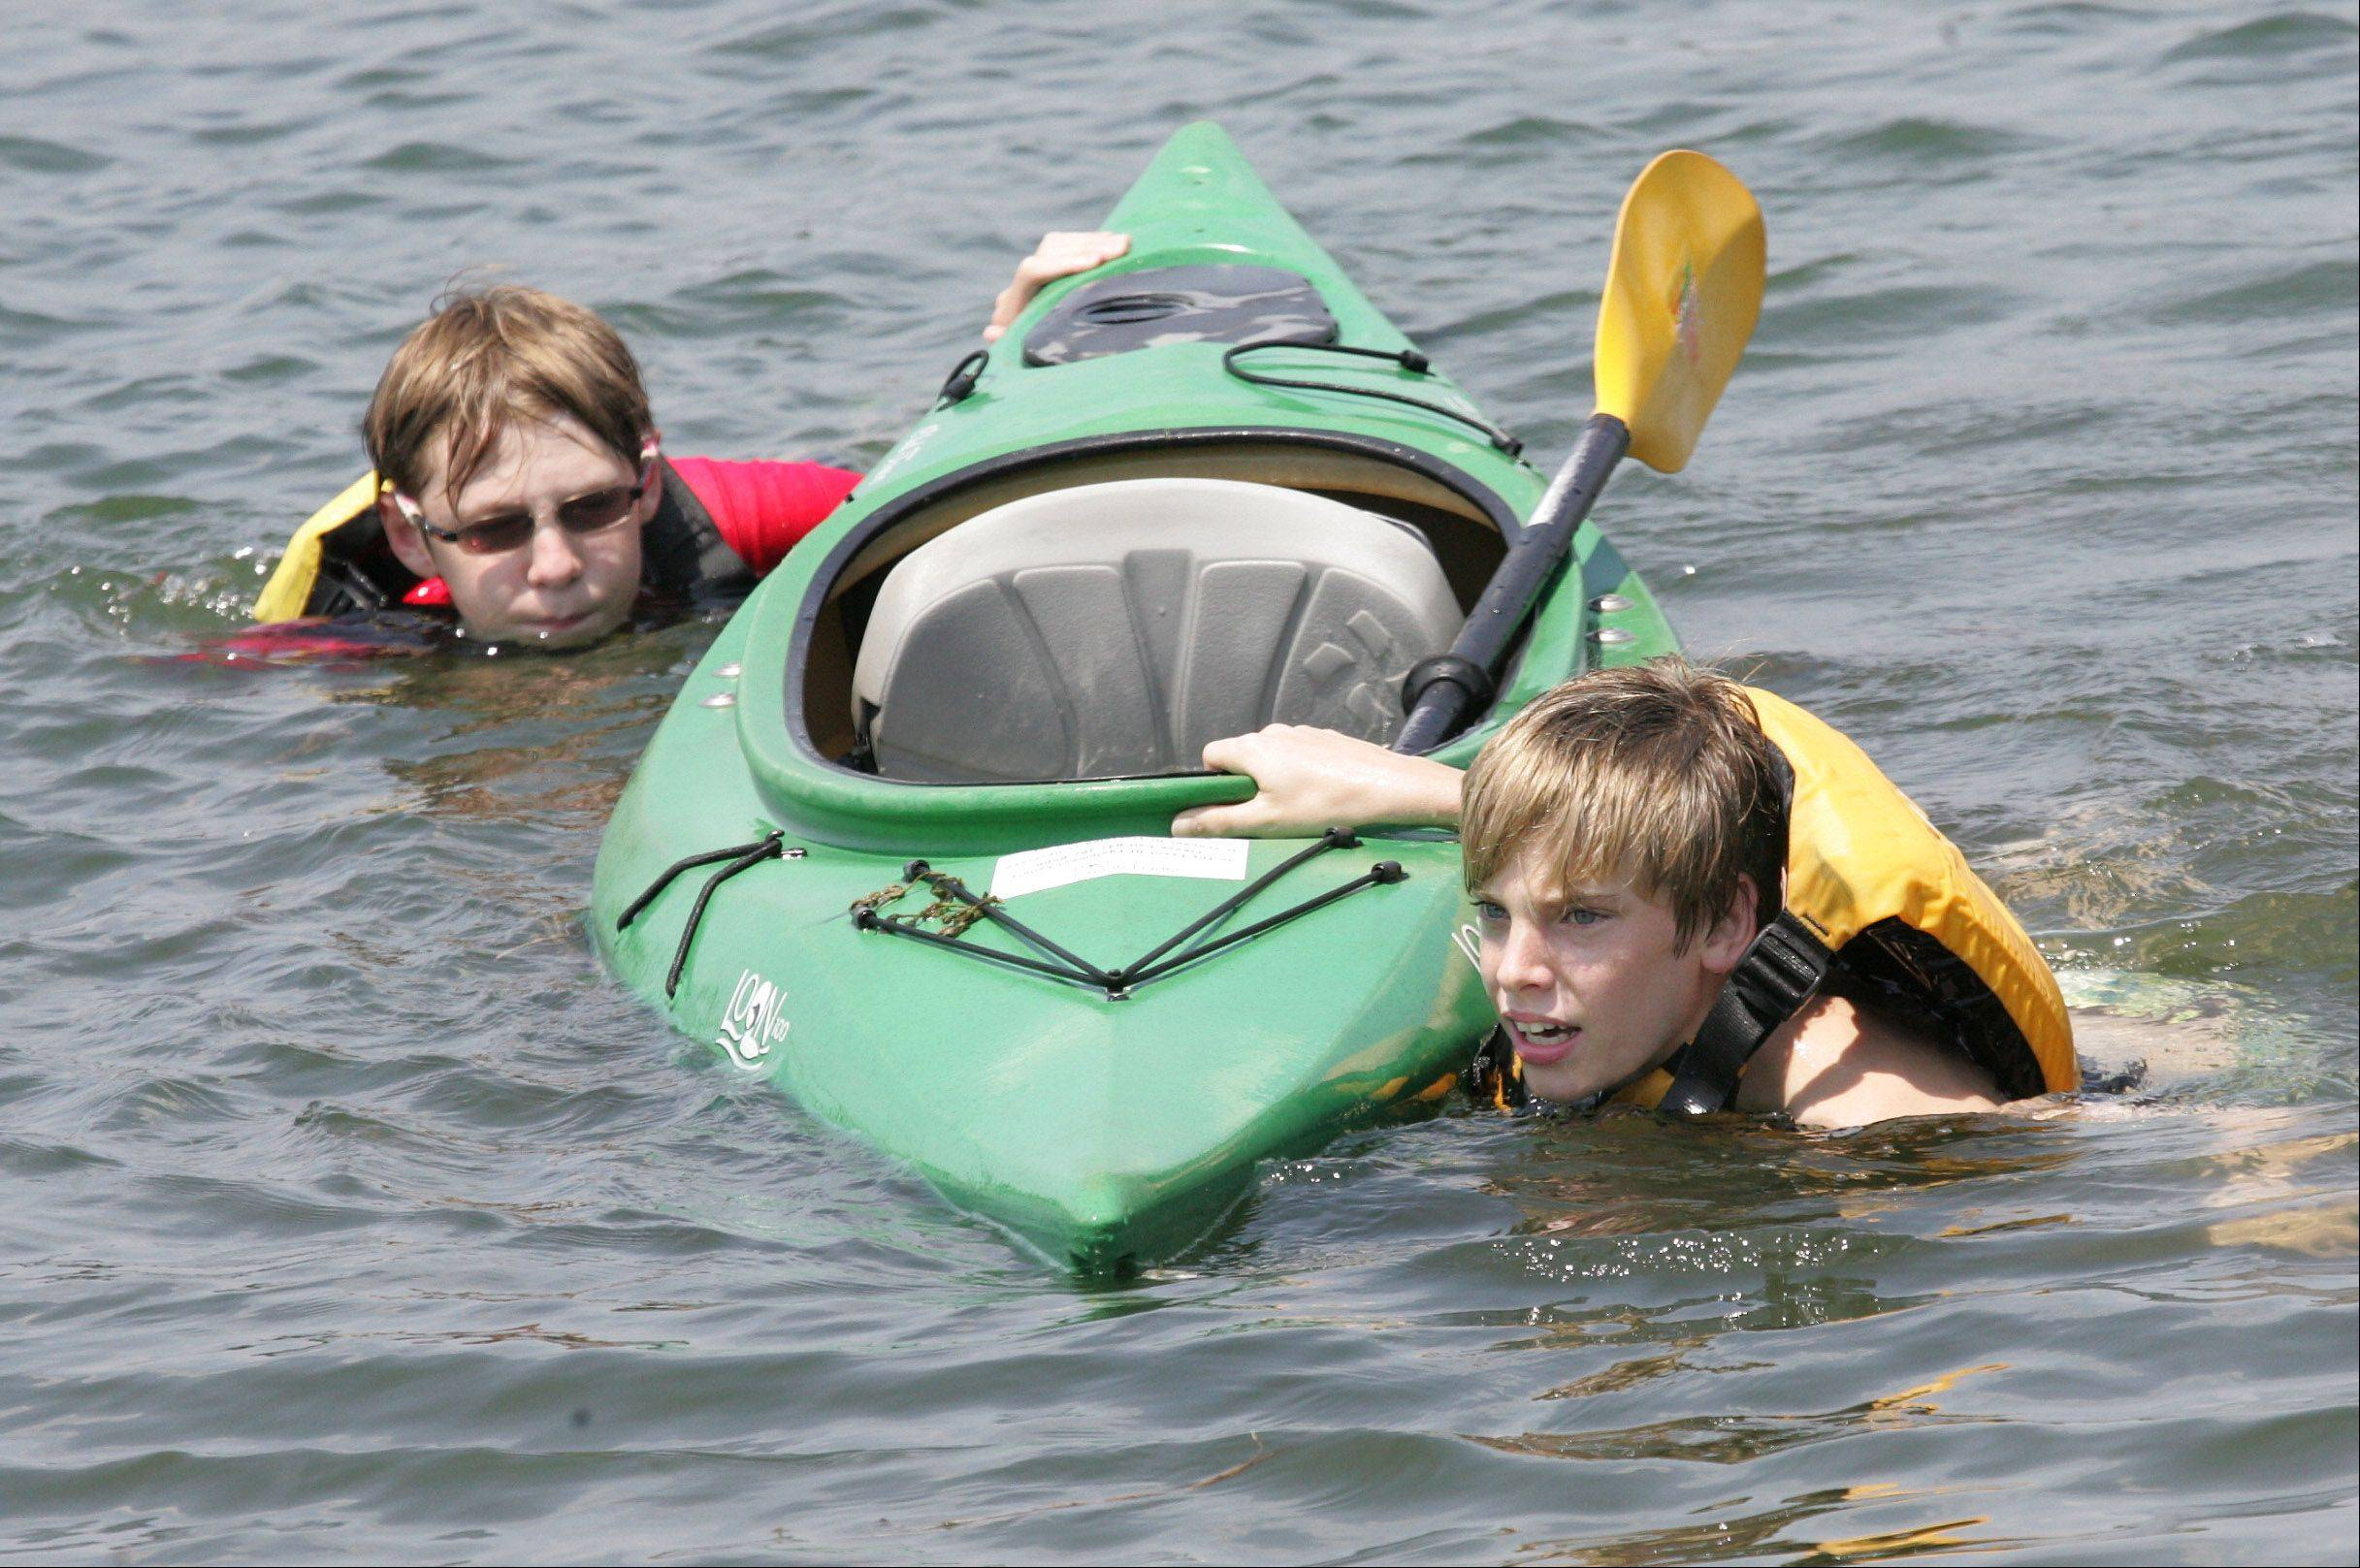 Joseph Harbeck, 13, left, and Tim Paczynski, 14, swim their kayak to shore after it was swamped during an exercise with the Adventures in Nature Camp on a lake at Independence Grove Forest Preserve in Libertyville.